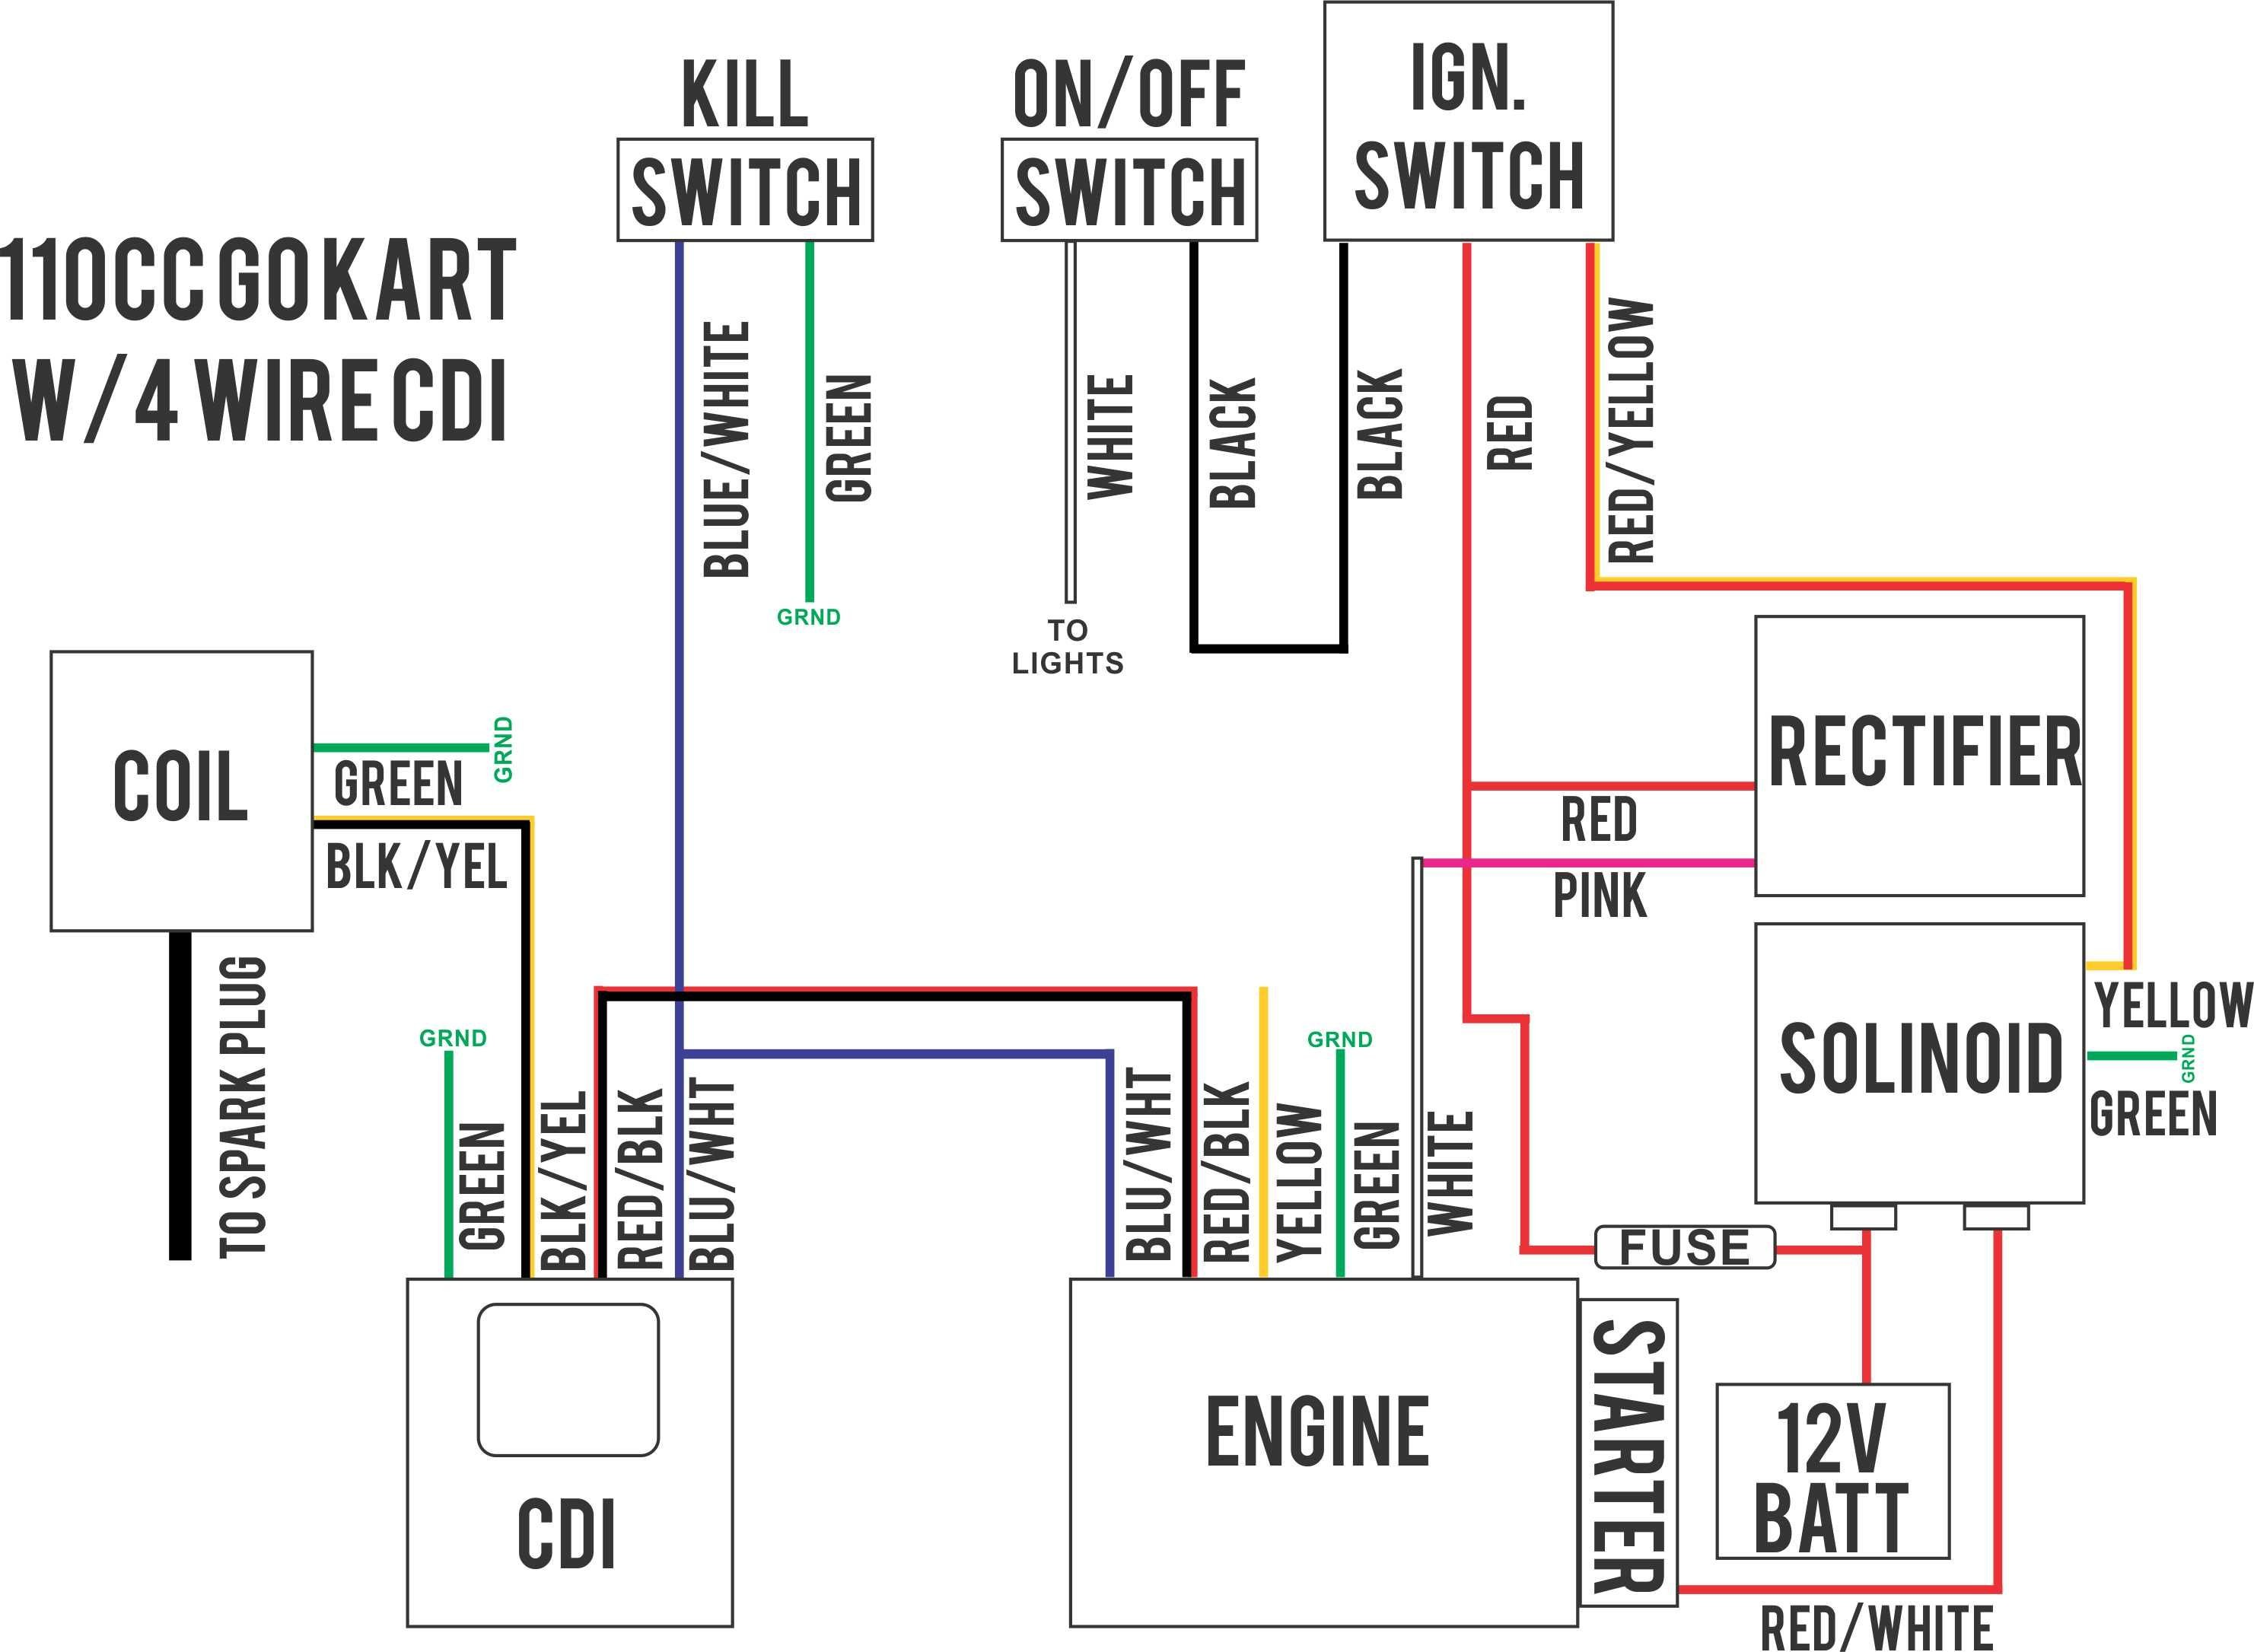 Chinese atv Wiring Schematic Vh 1334] 110cc atv Wiring Diagram to Her with Loncin 110cc Of Chinese atv Wiring Schematic